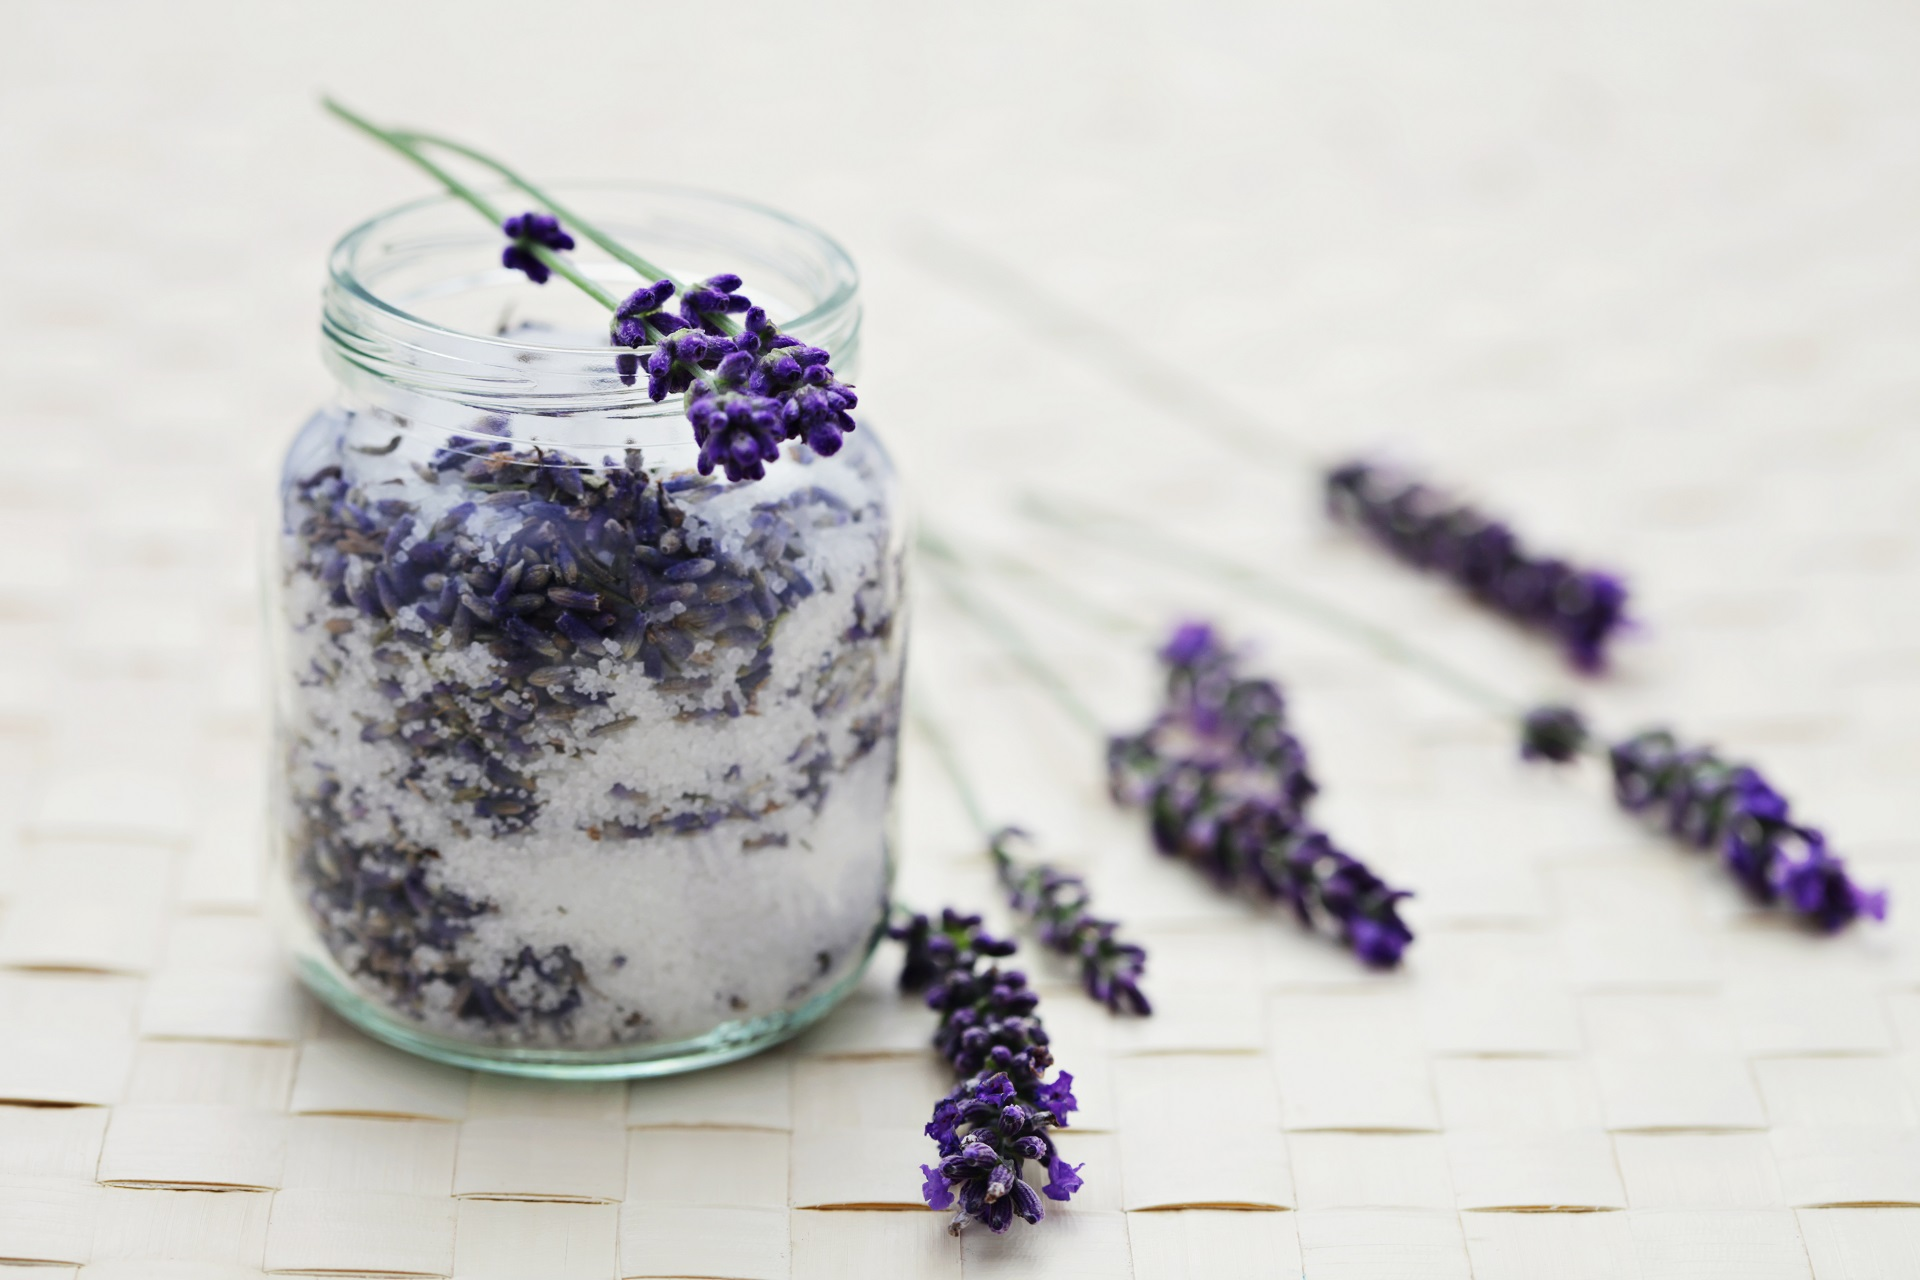 Lavender sugar as gifts.